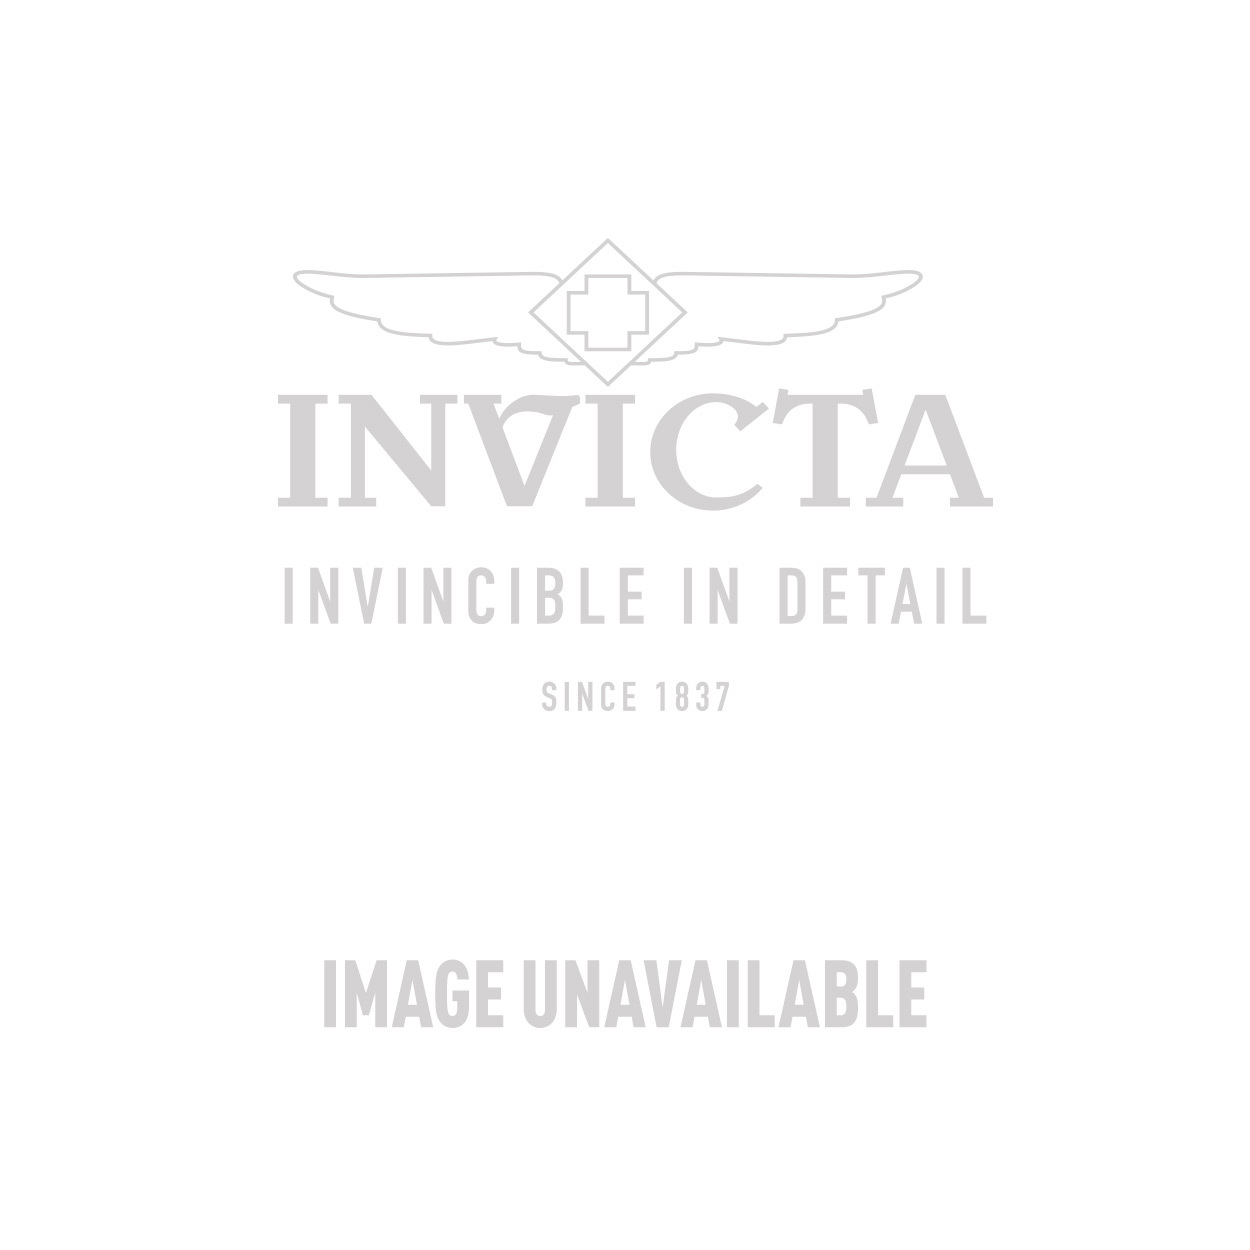 Invicta Specialty Swiss Movement Quartz Watch - Gold case with Red tone Leather band - Model 11193